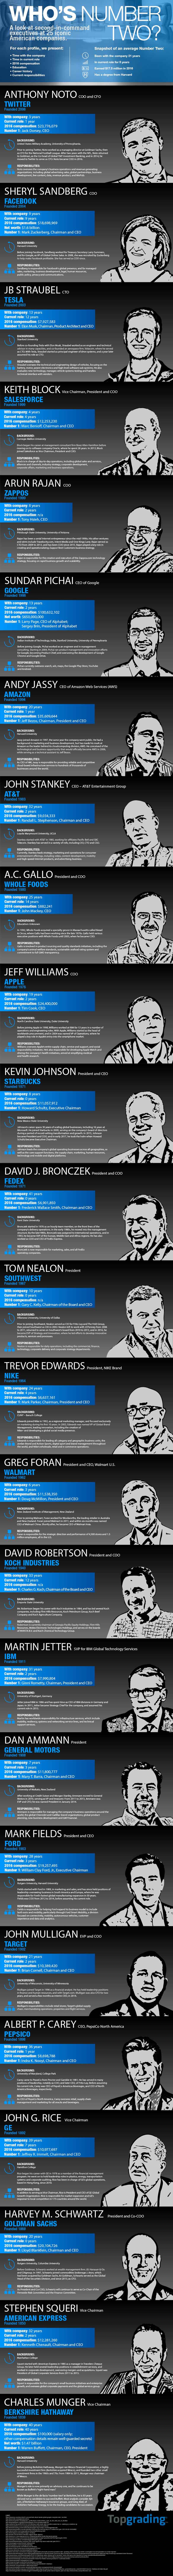 Second-in-Command at 25 Iconic American Companies